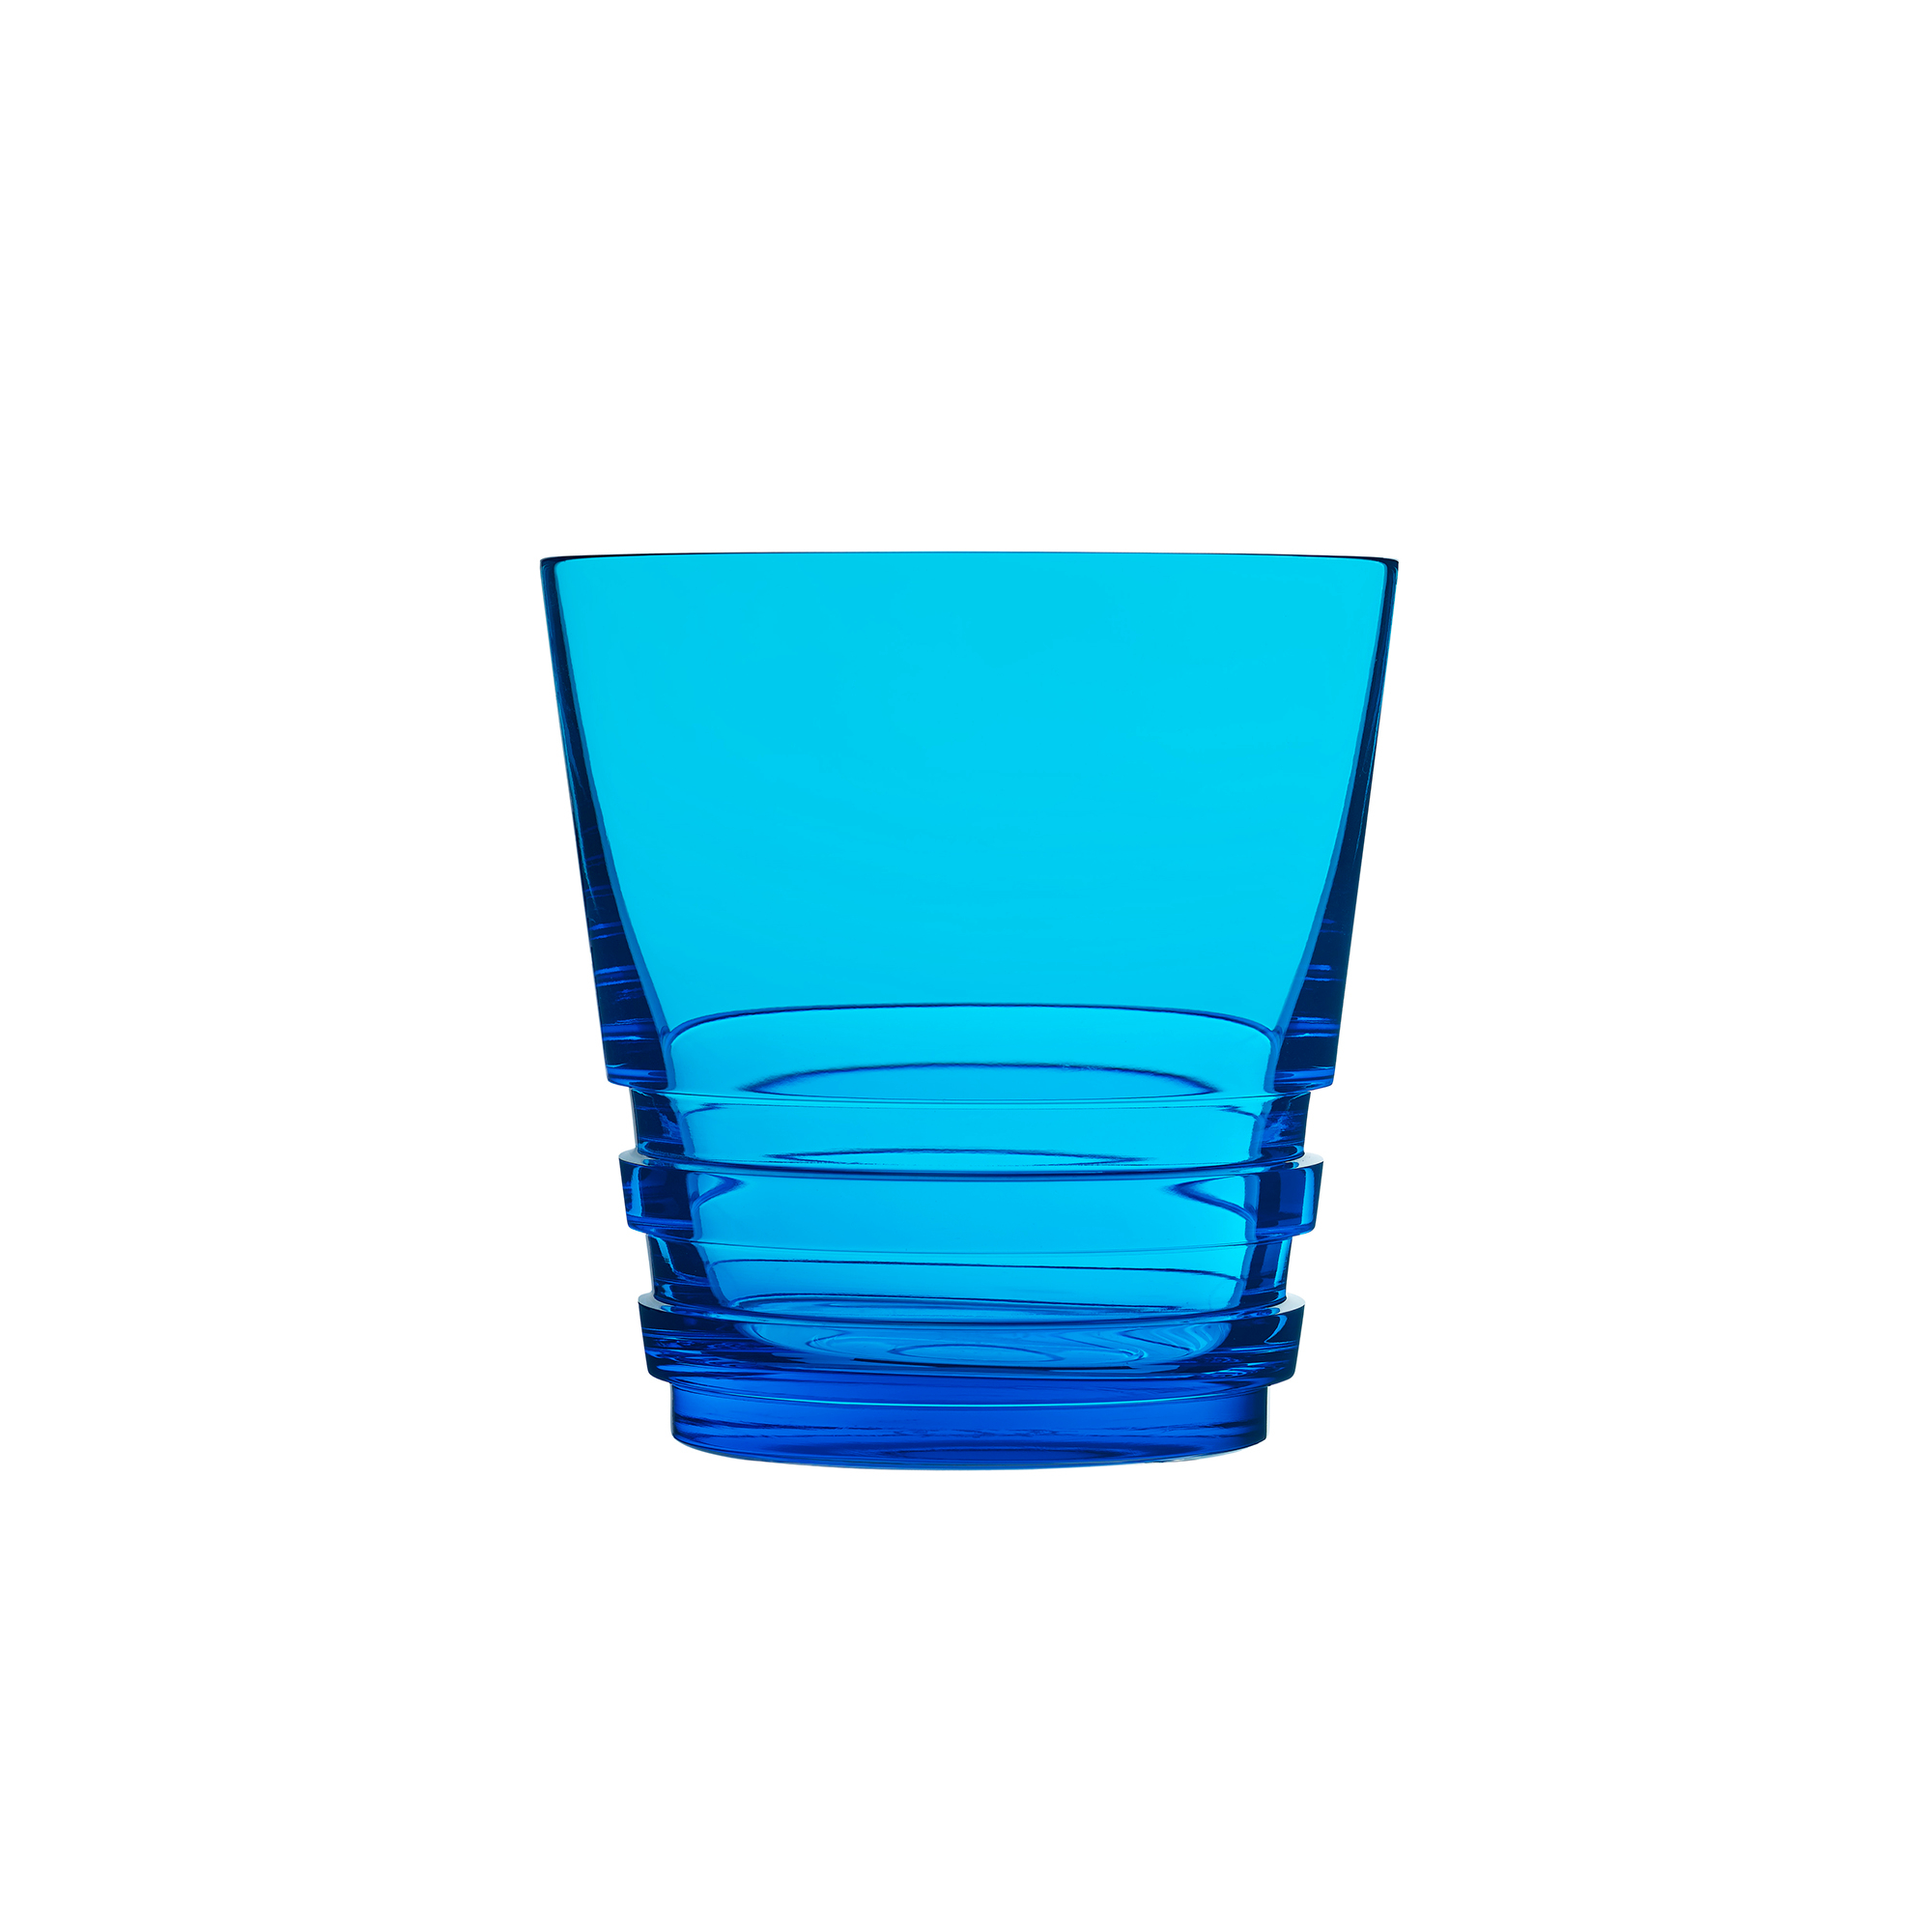 Saint-Louis Oxymore Old-Fashioned Glass, Sky Blue